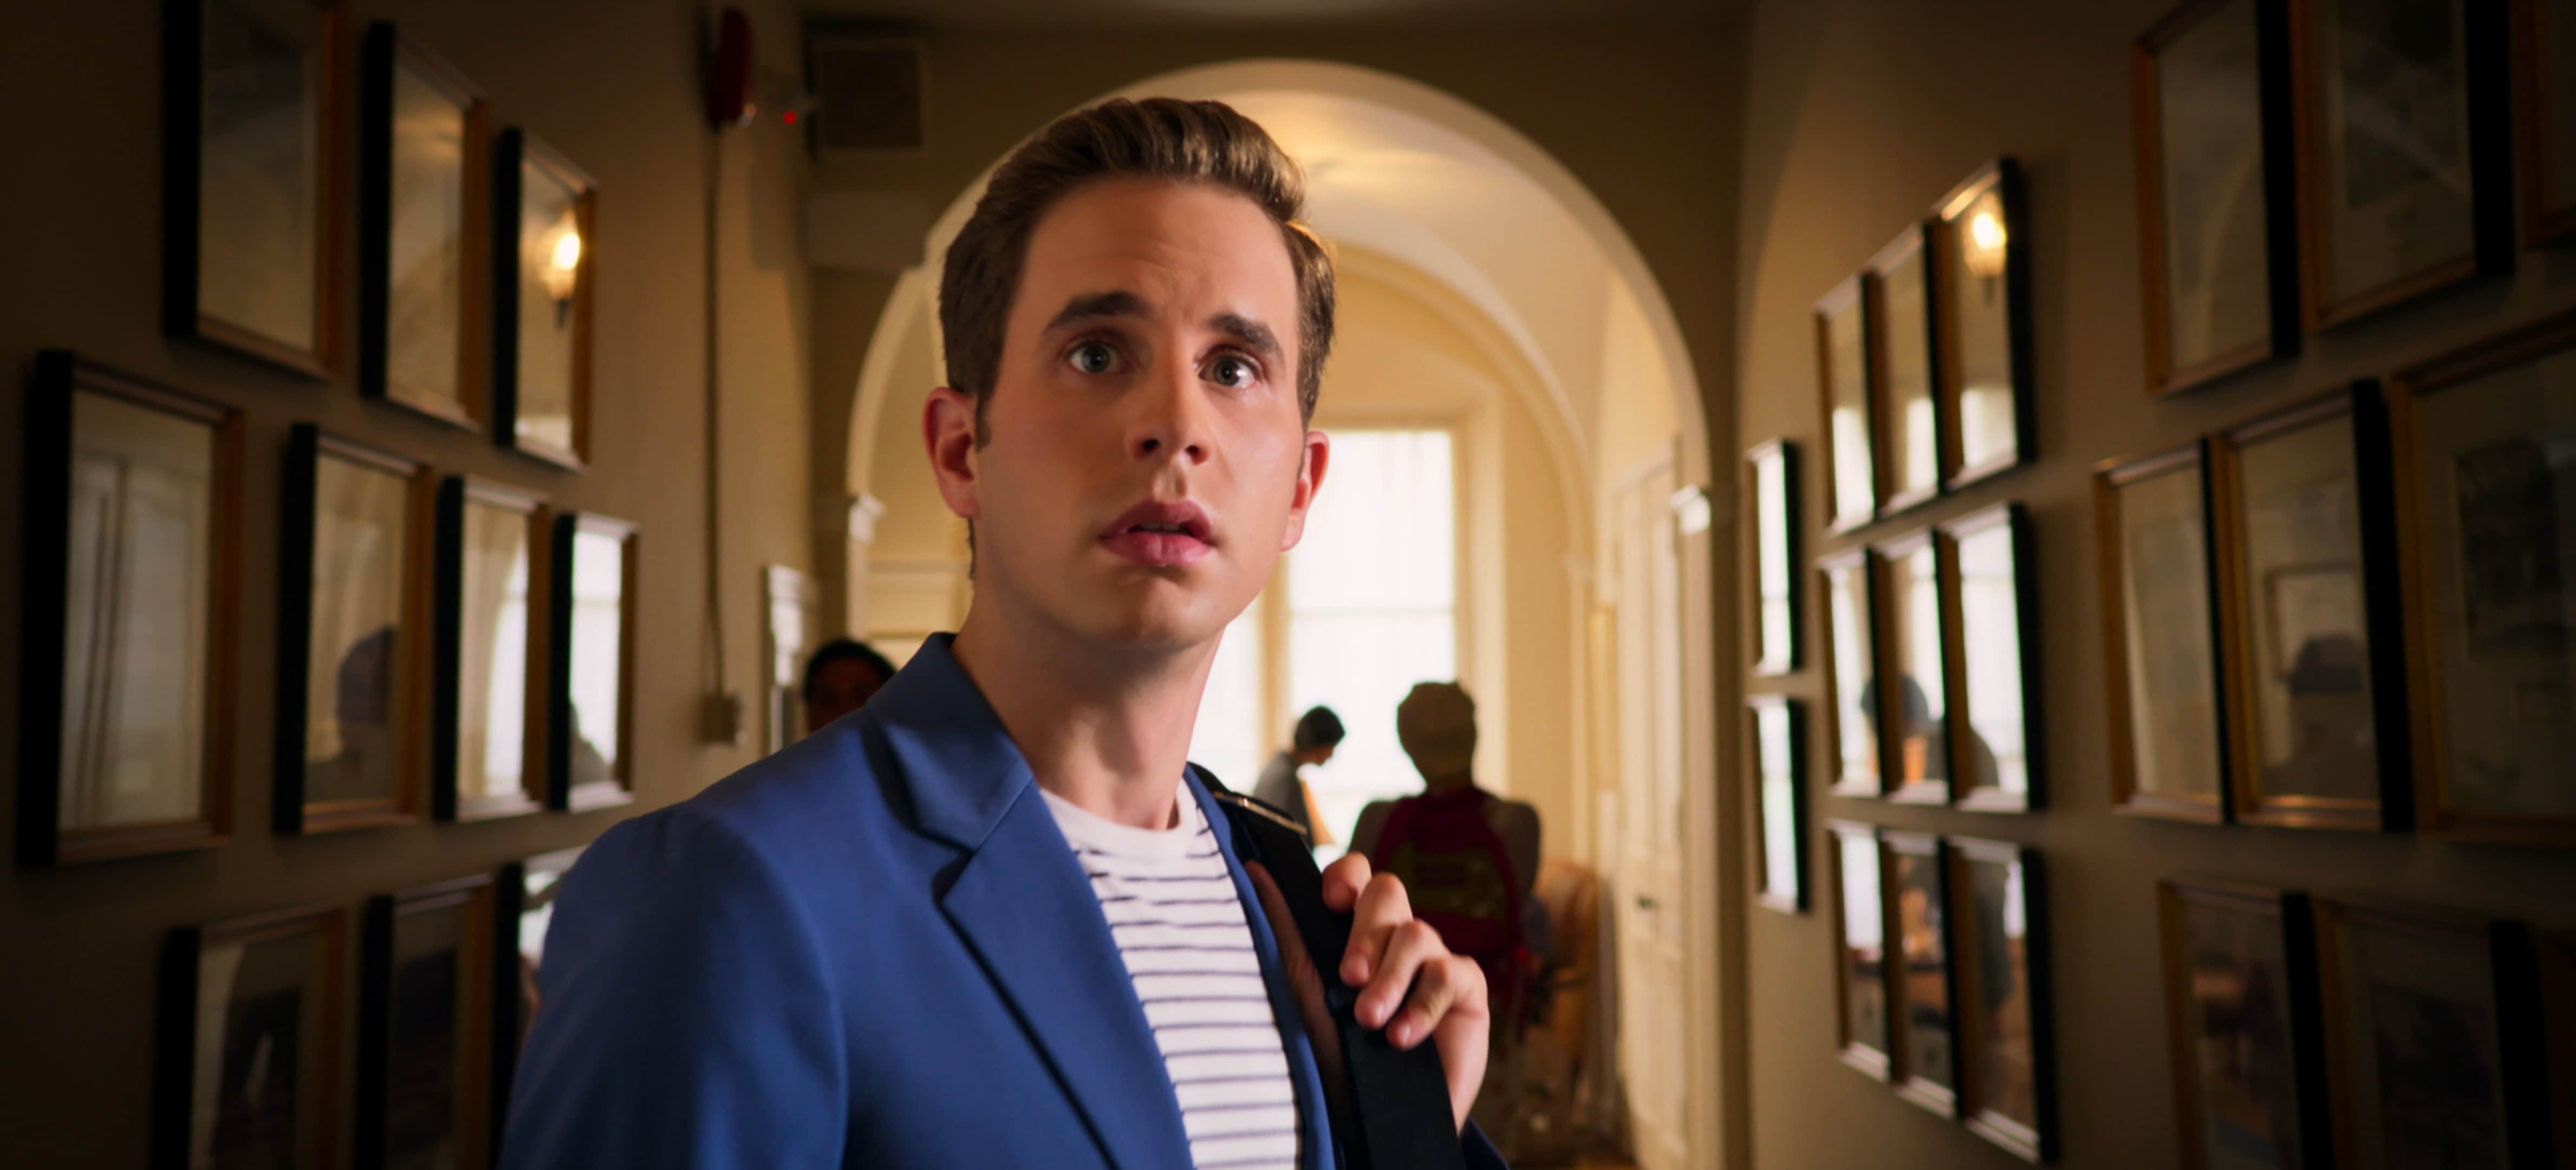 Actor Ben Platt playing as Payton Hobart in Netflix's The Politician